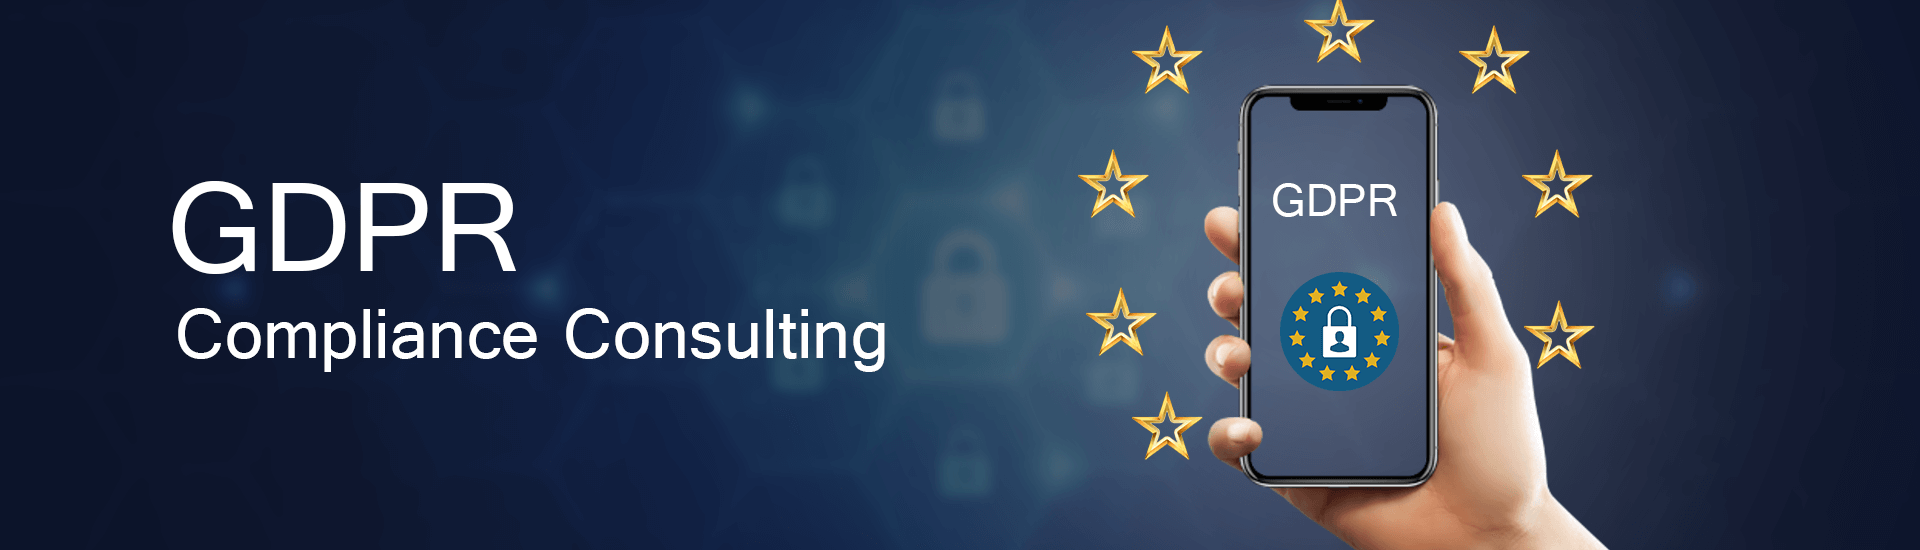 GDPR compliance consulting